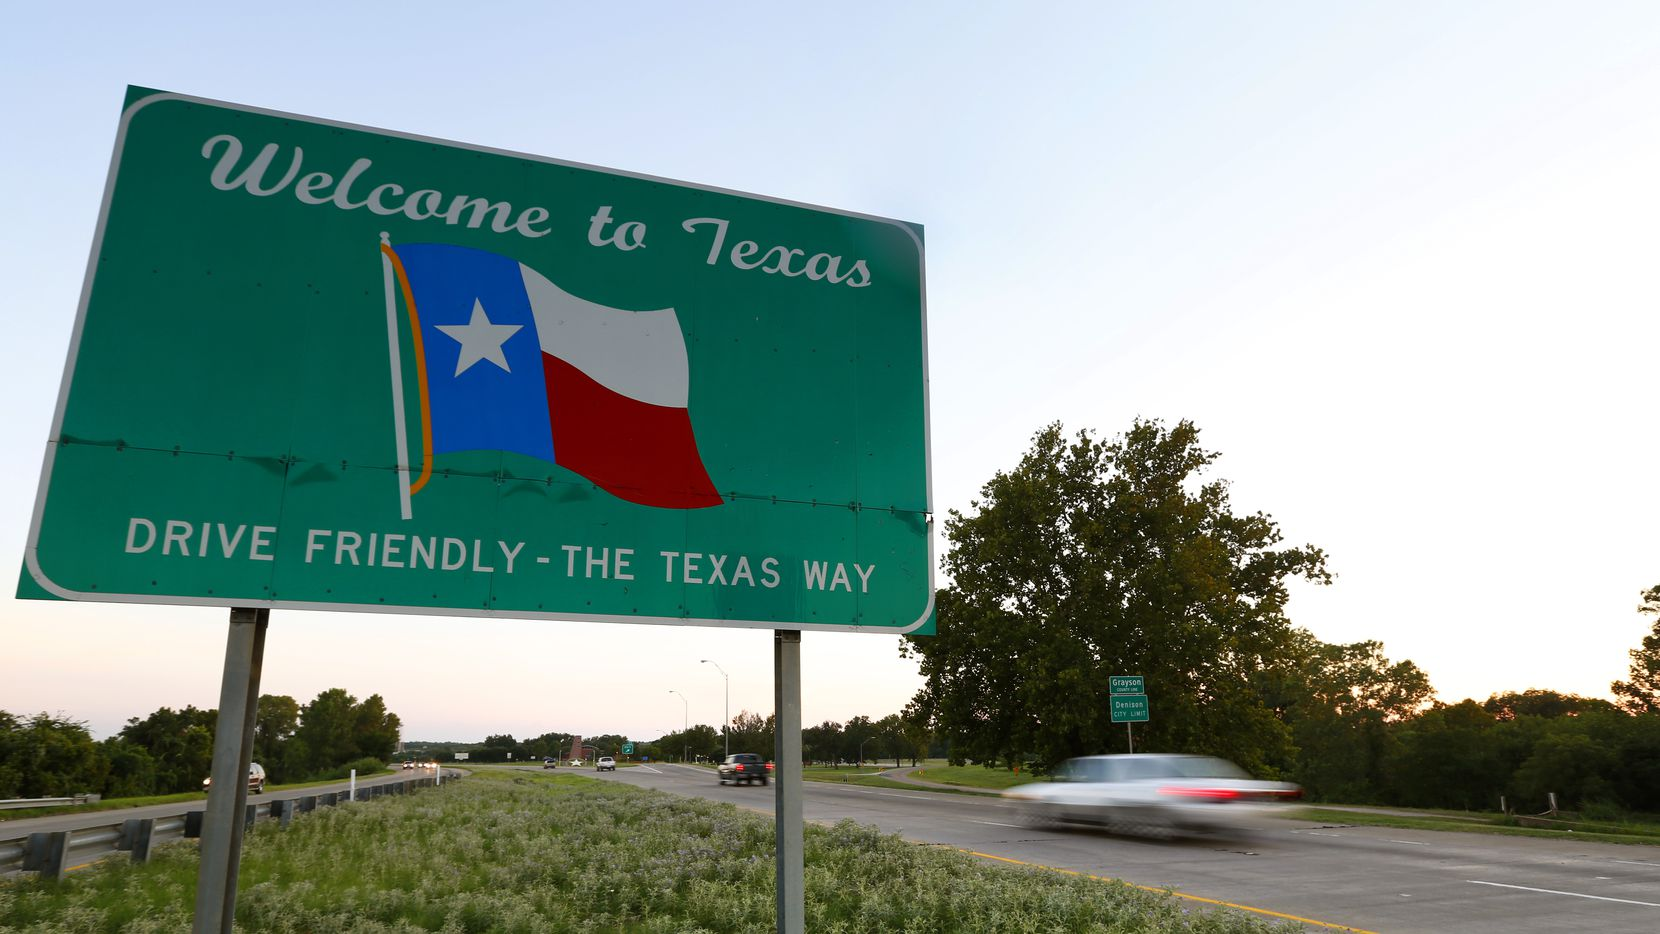 About 75,000 people migrated to the D-FW area in 2020.